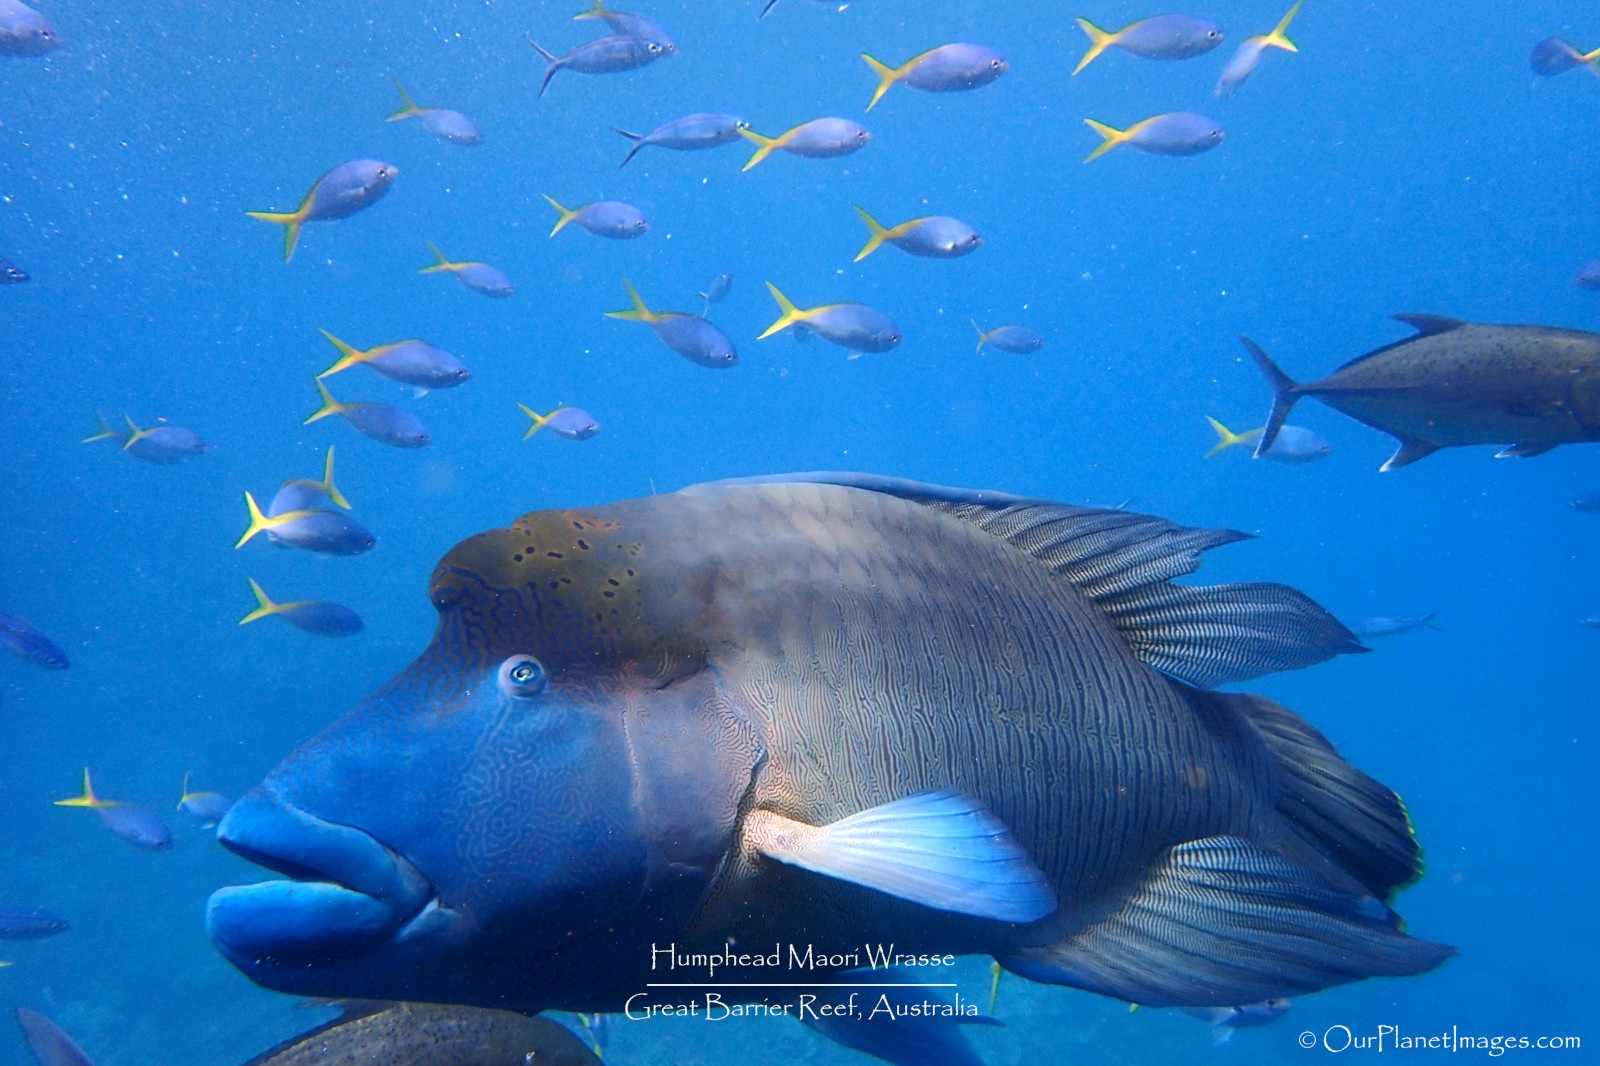 Humphead Maori Wrasse in Great Barrier Reef